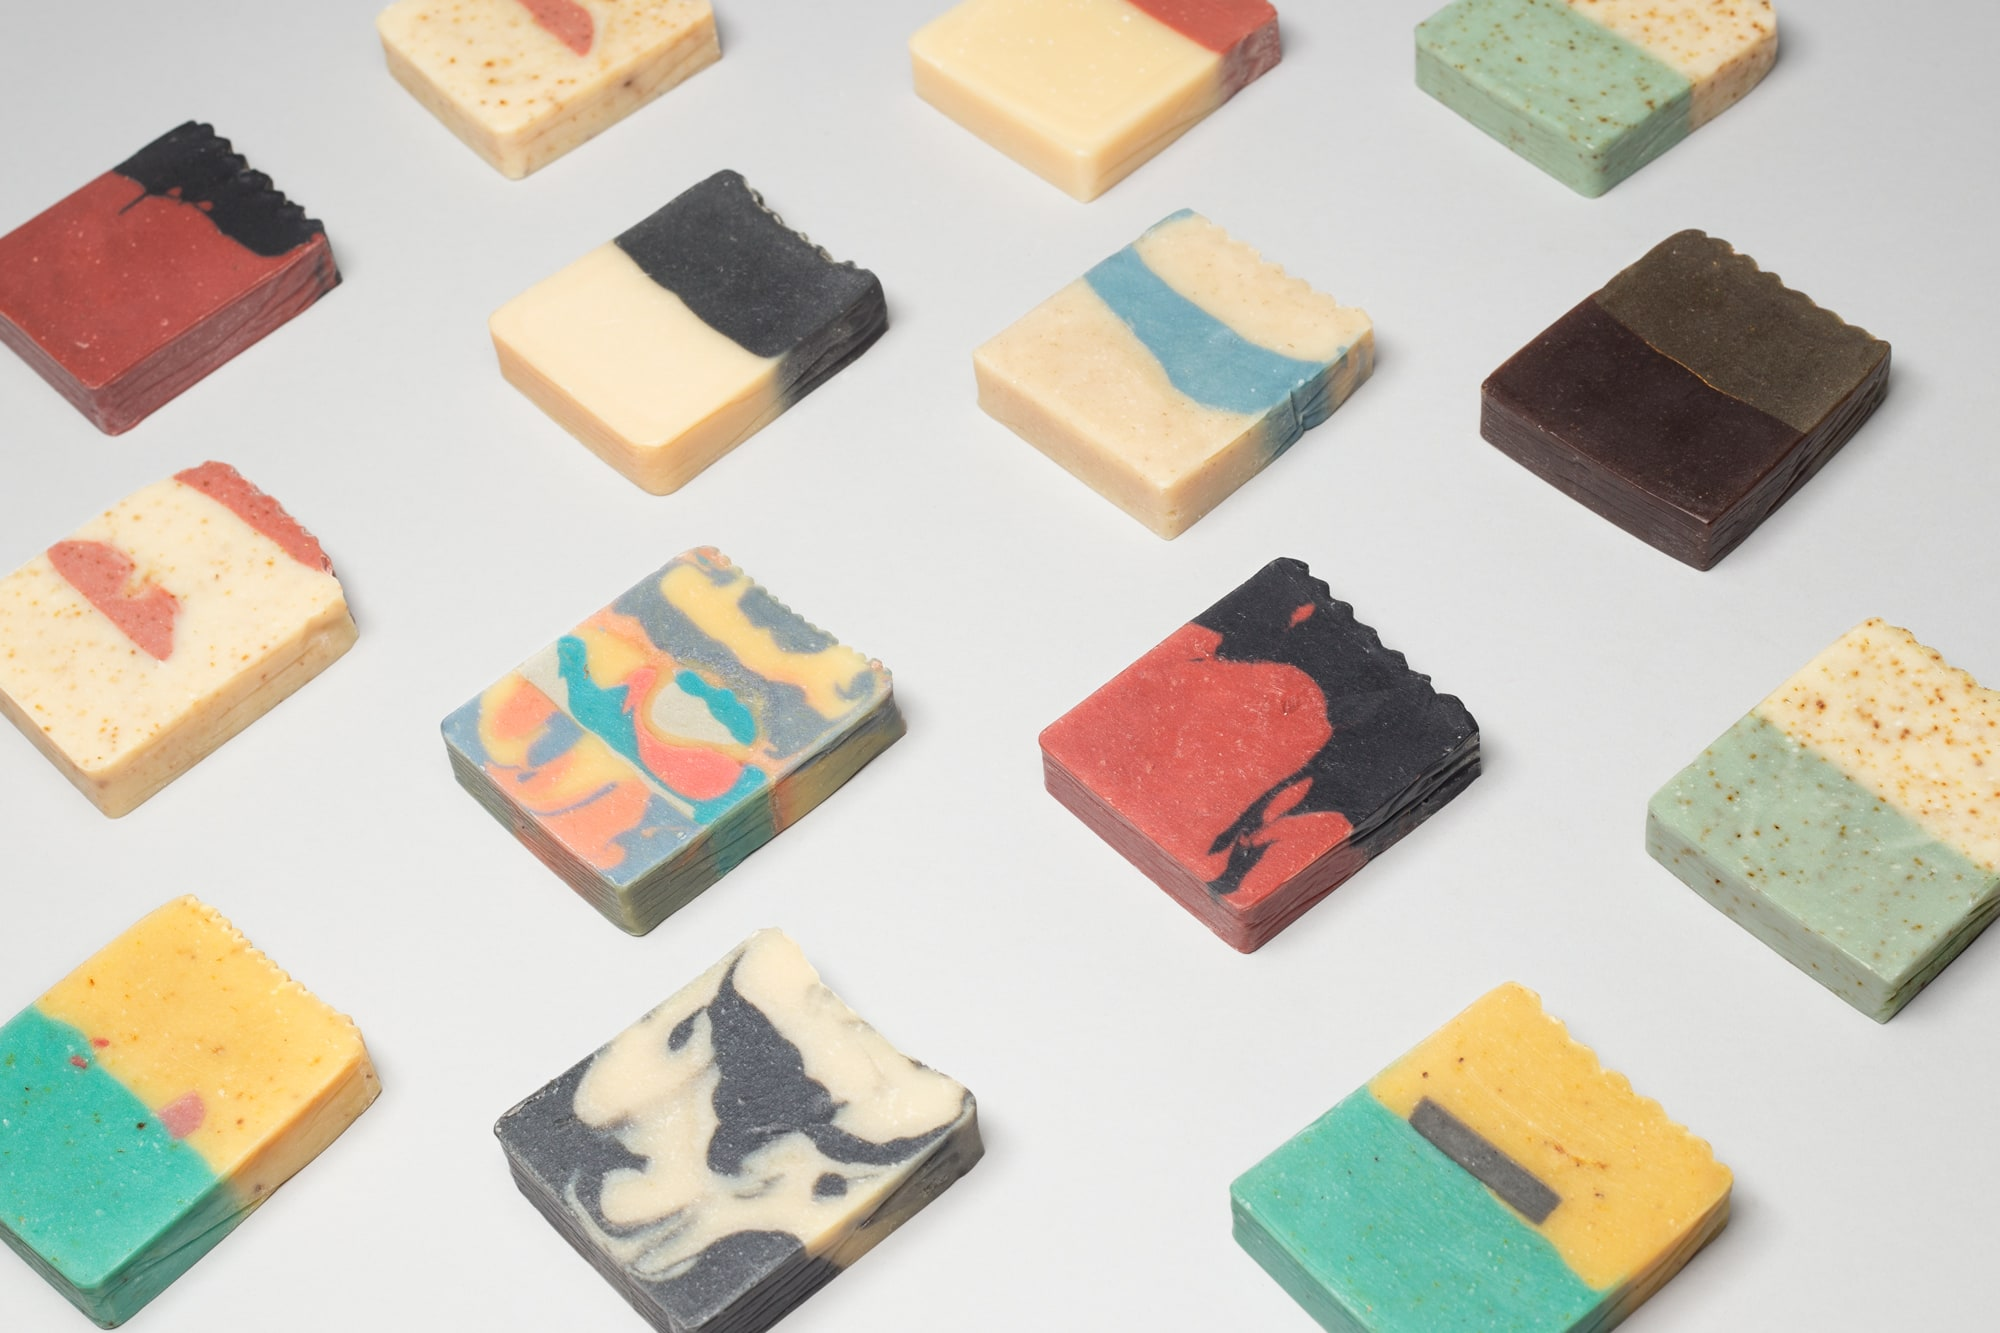 All soaps image, made in portugal